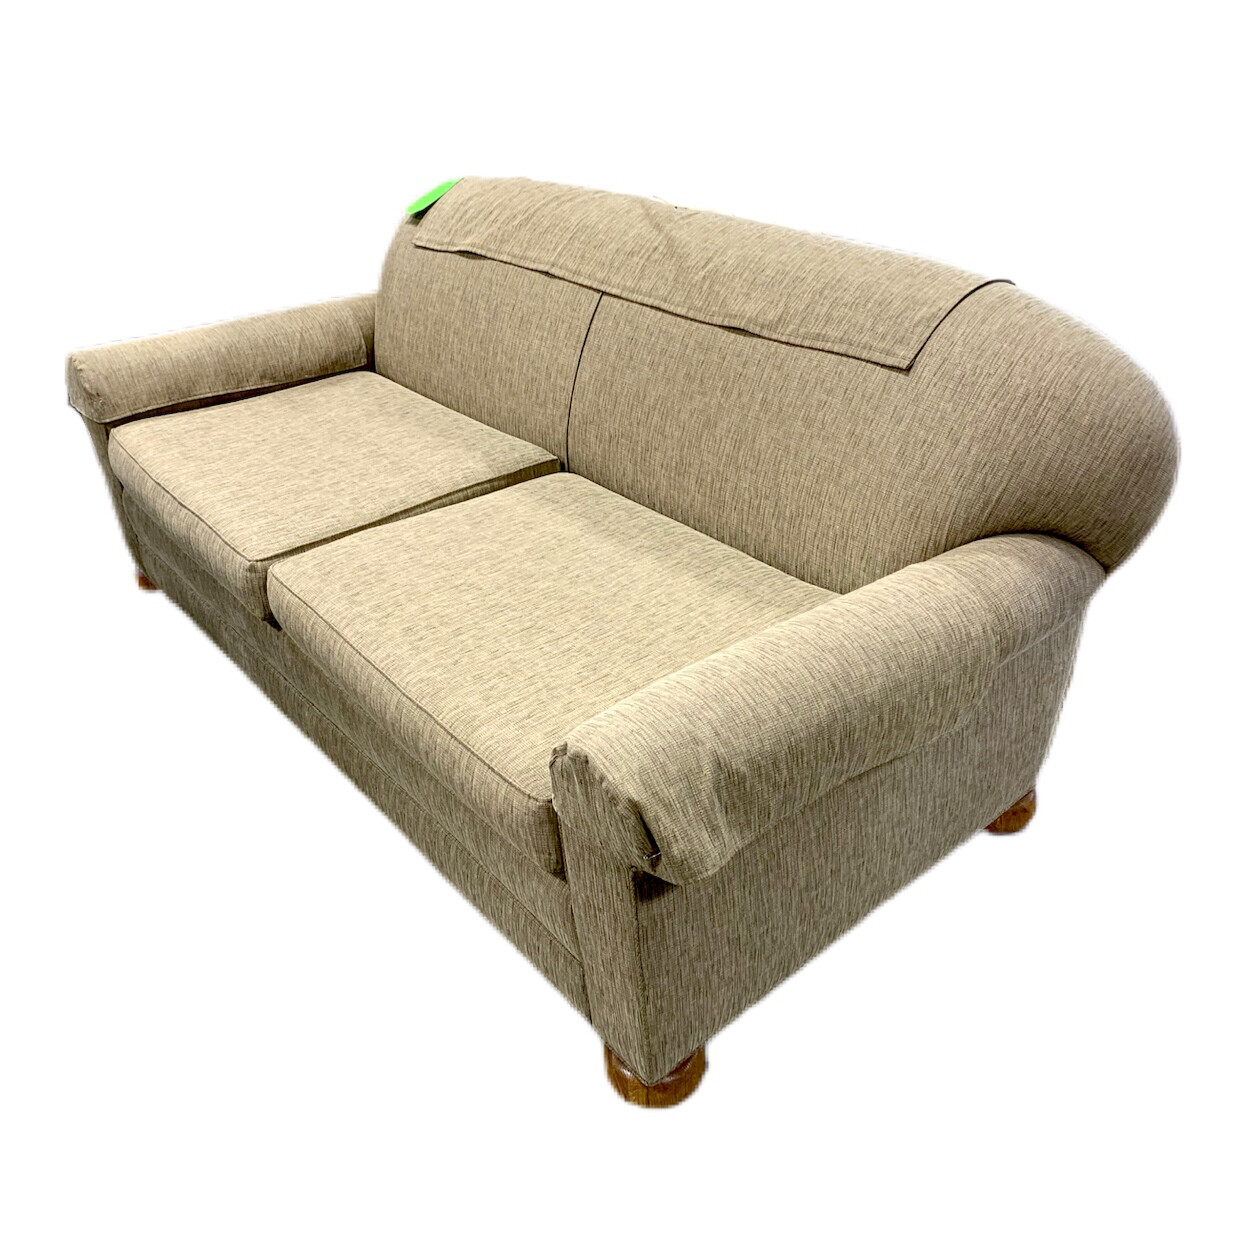 Tan/Beige Couch